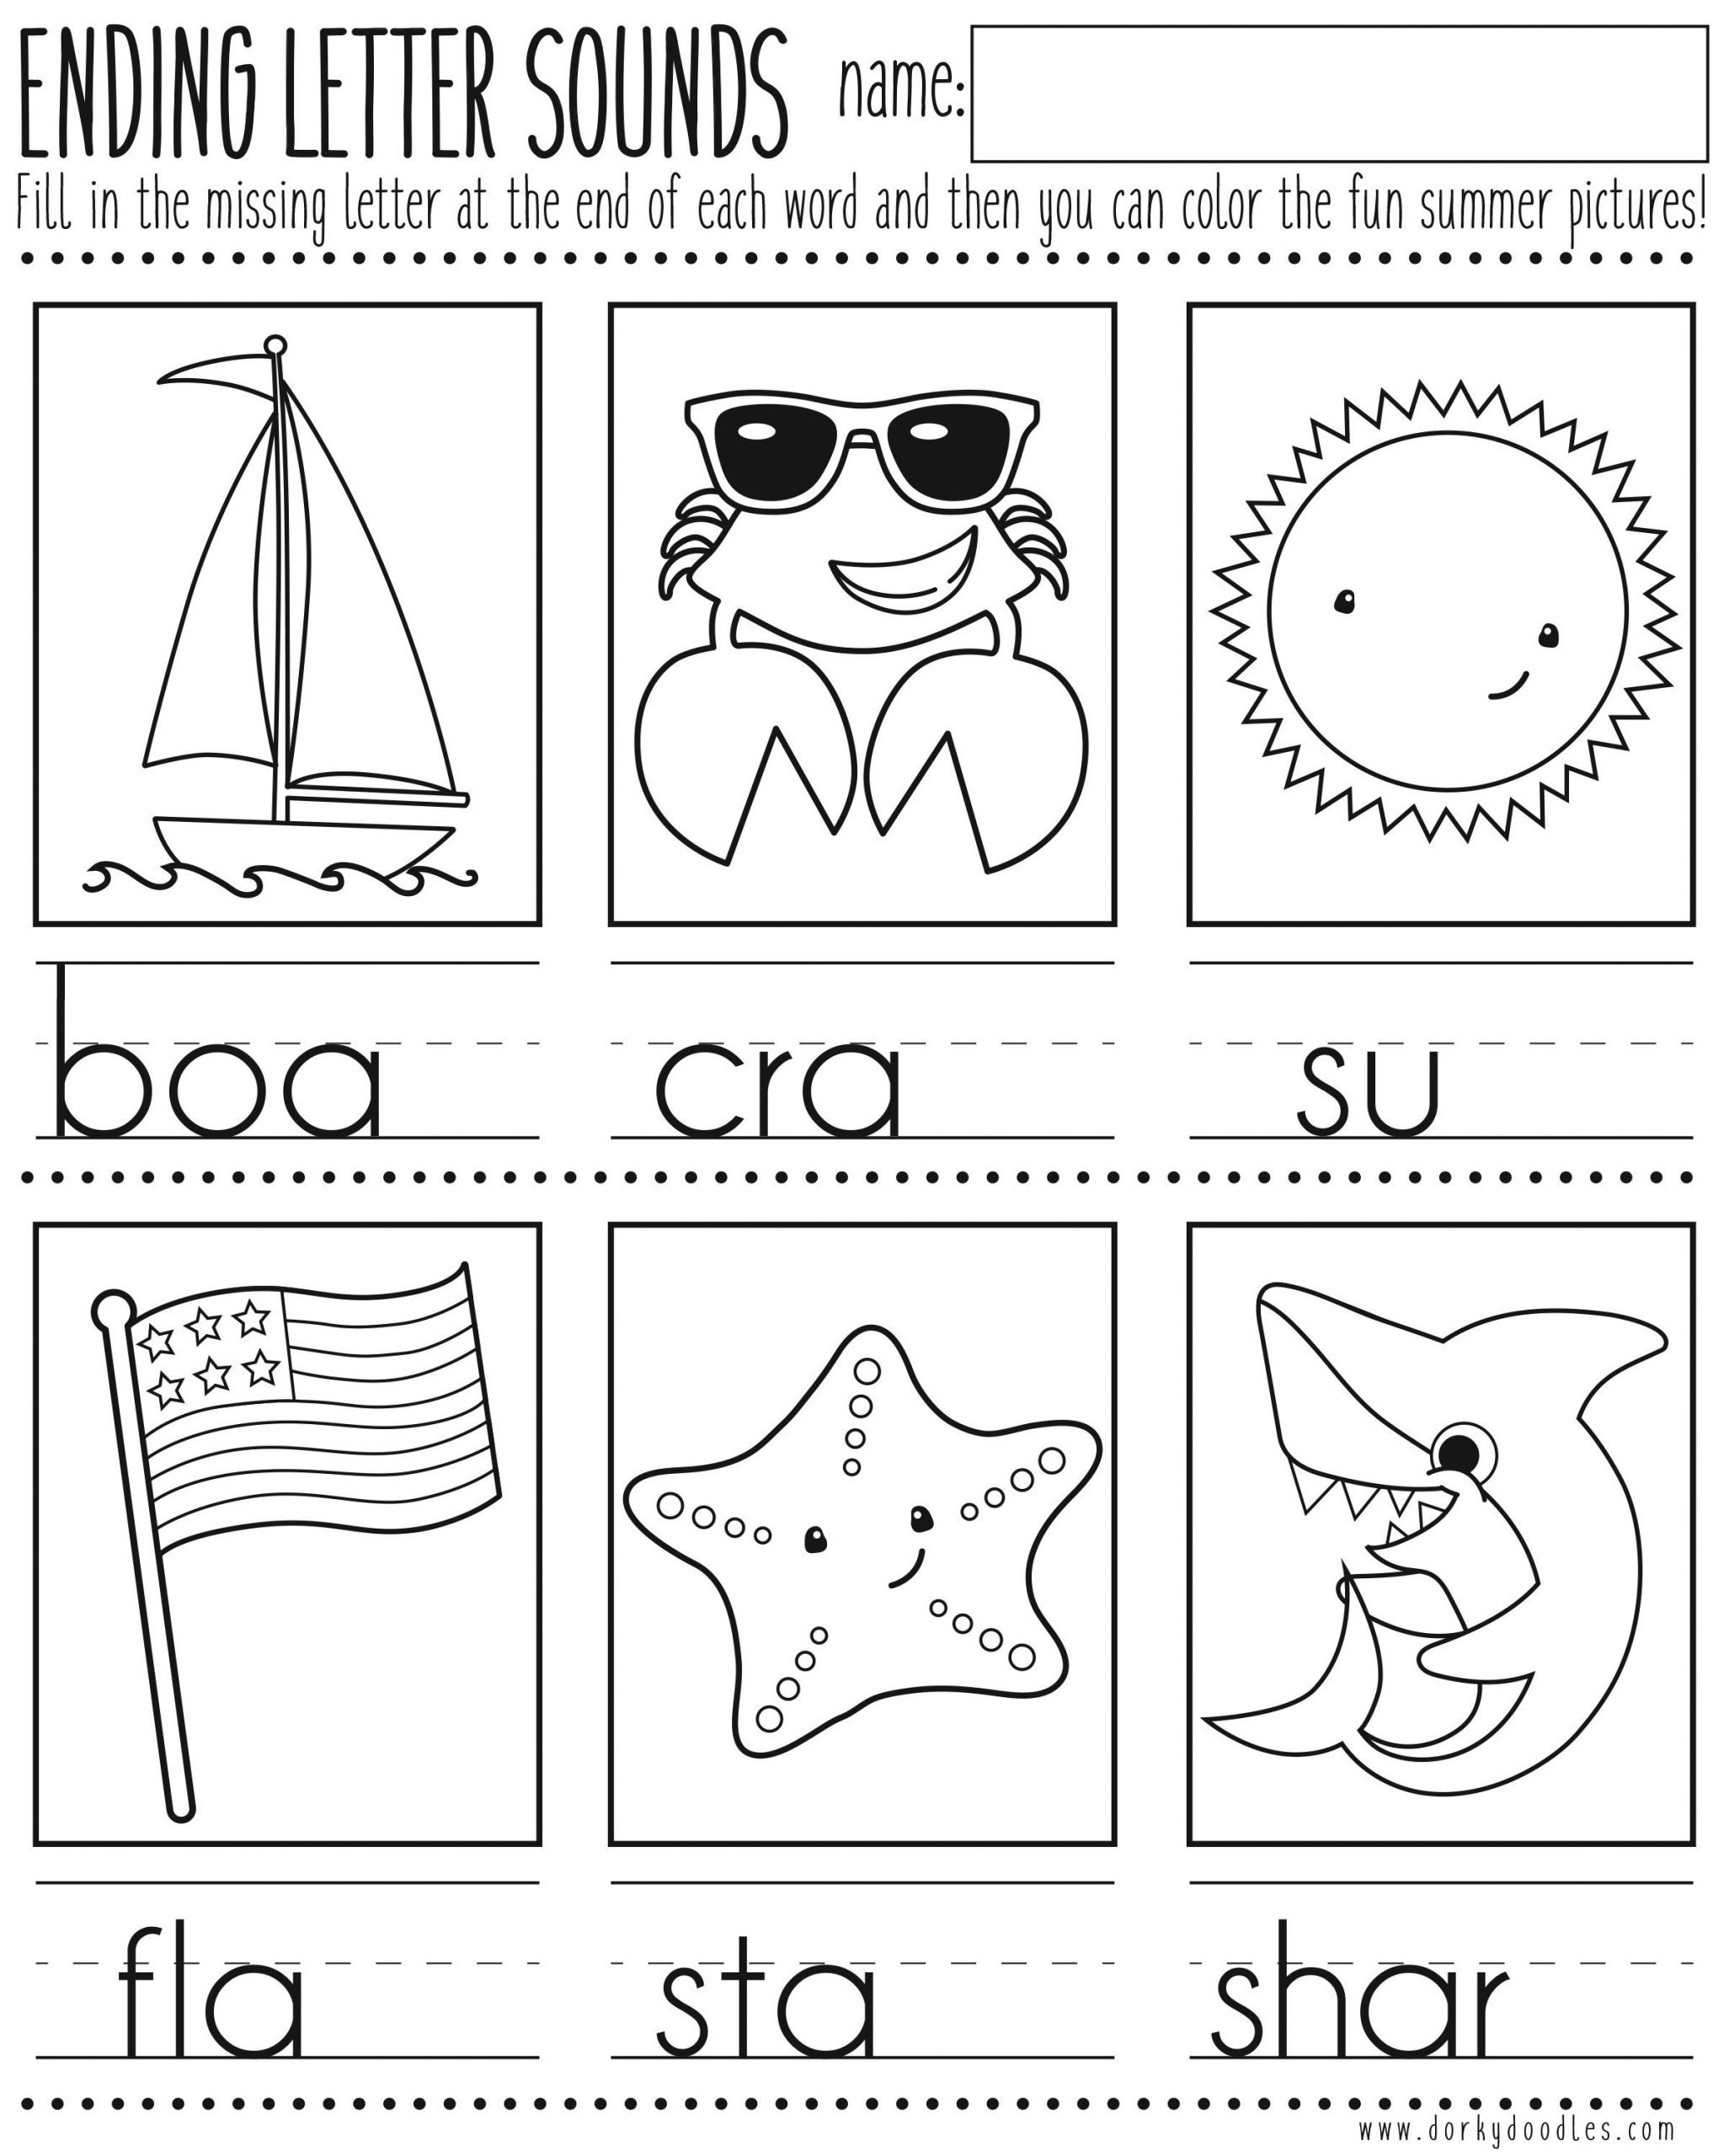 Ending sound Worksheet Ending Letter sounds Printable Worksheet – Dorky Doodles